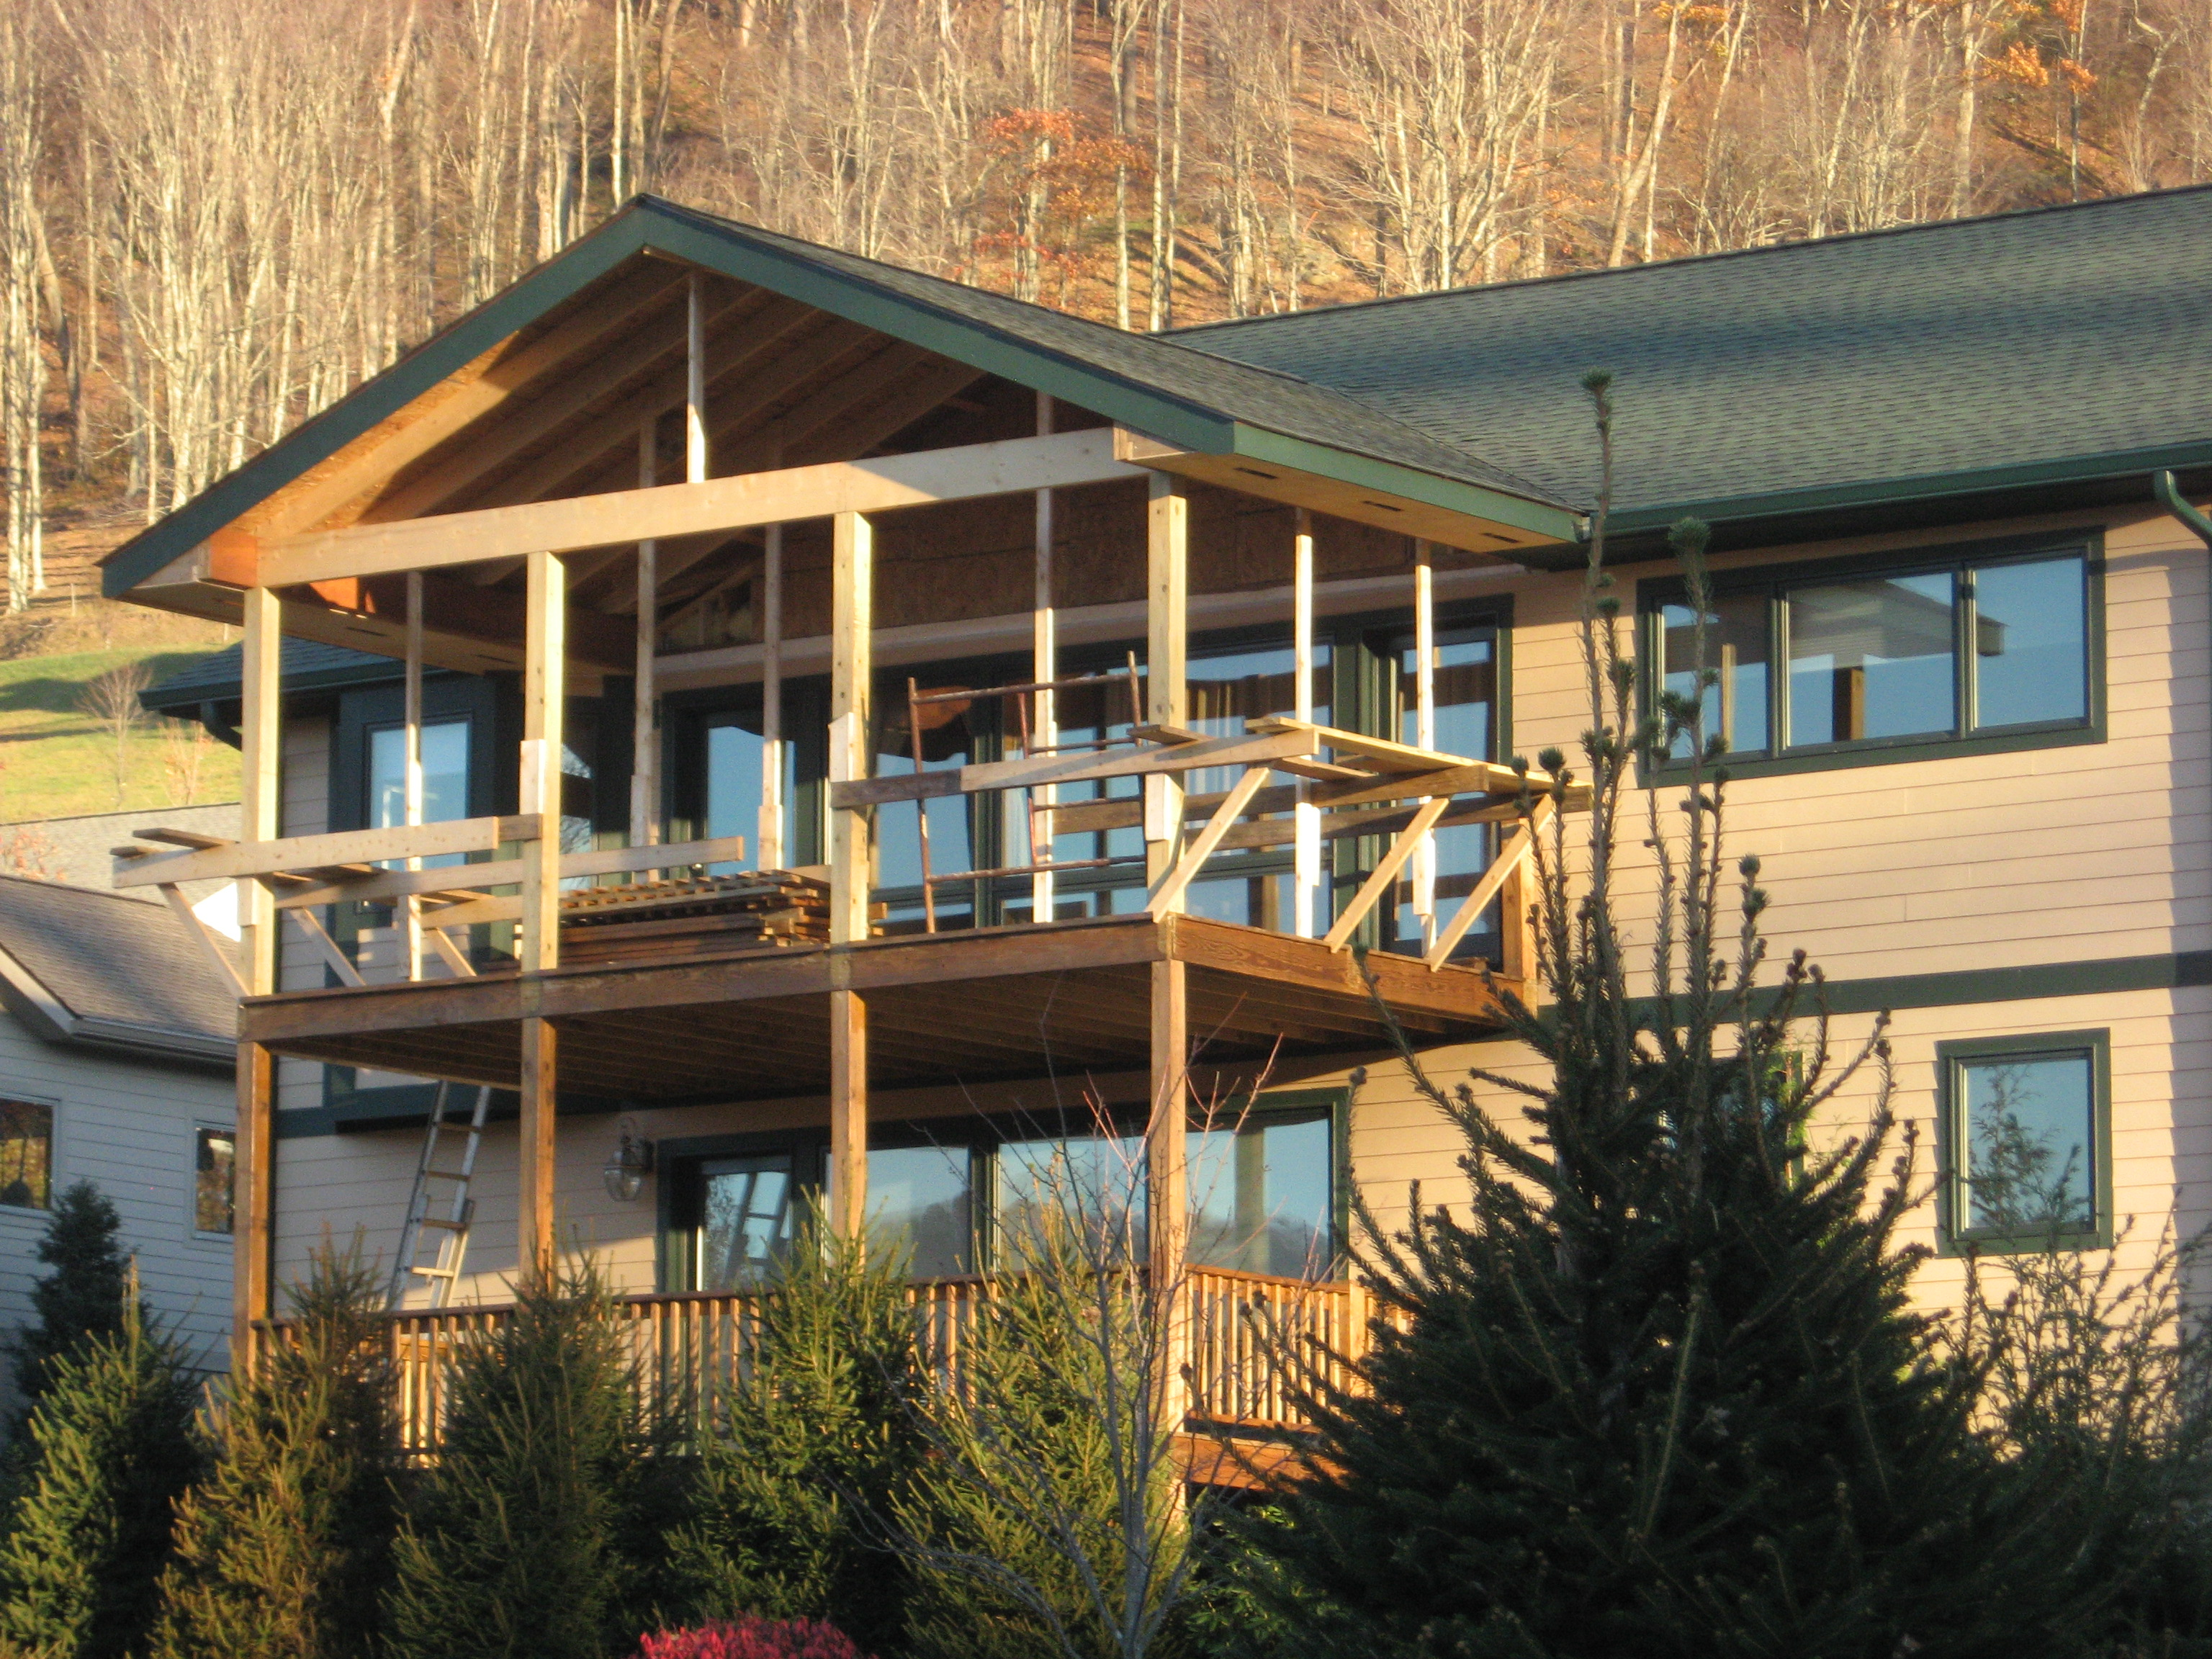 Sheppard family custom homes construction services for Banner elk home builders